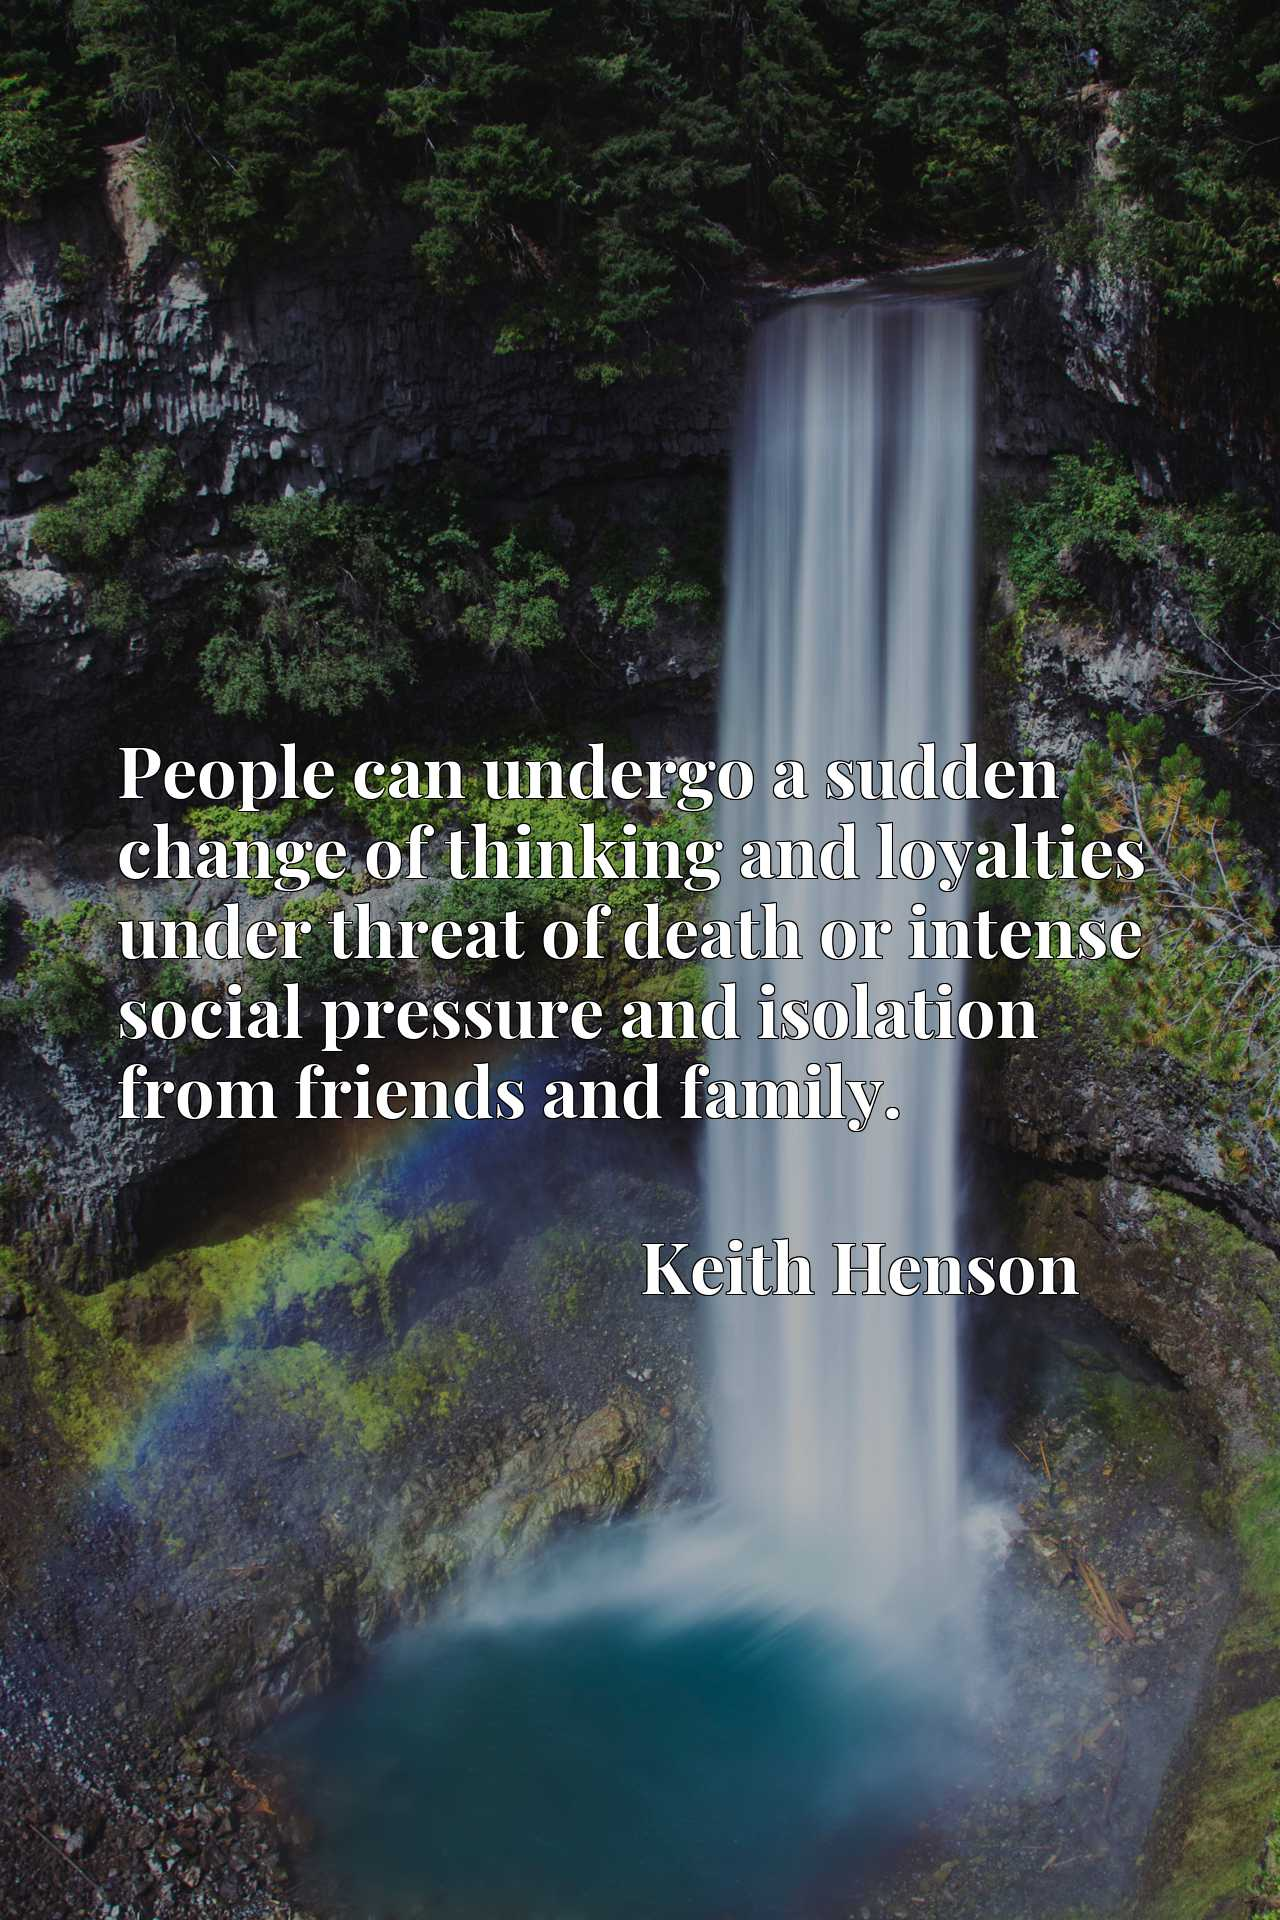 People can undergo a sudden change of thinking and loyalties under threat of death or intense social pressure and isolation from friends and family.